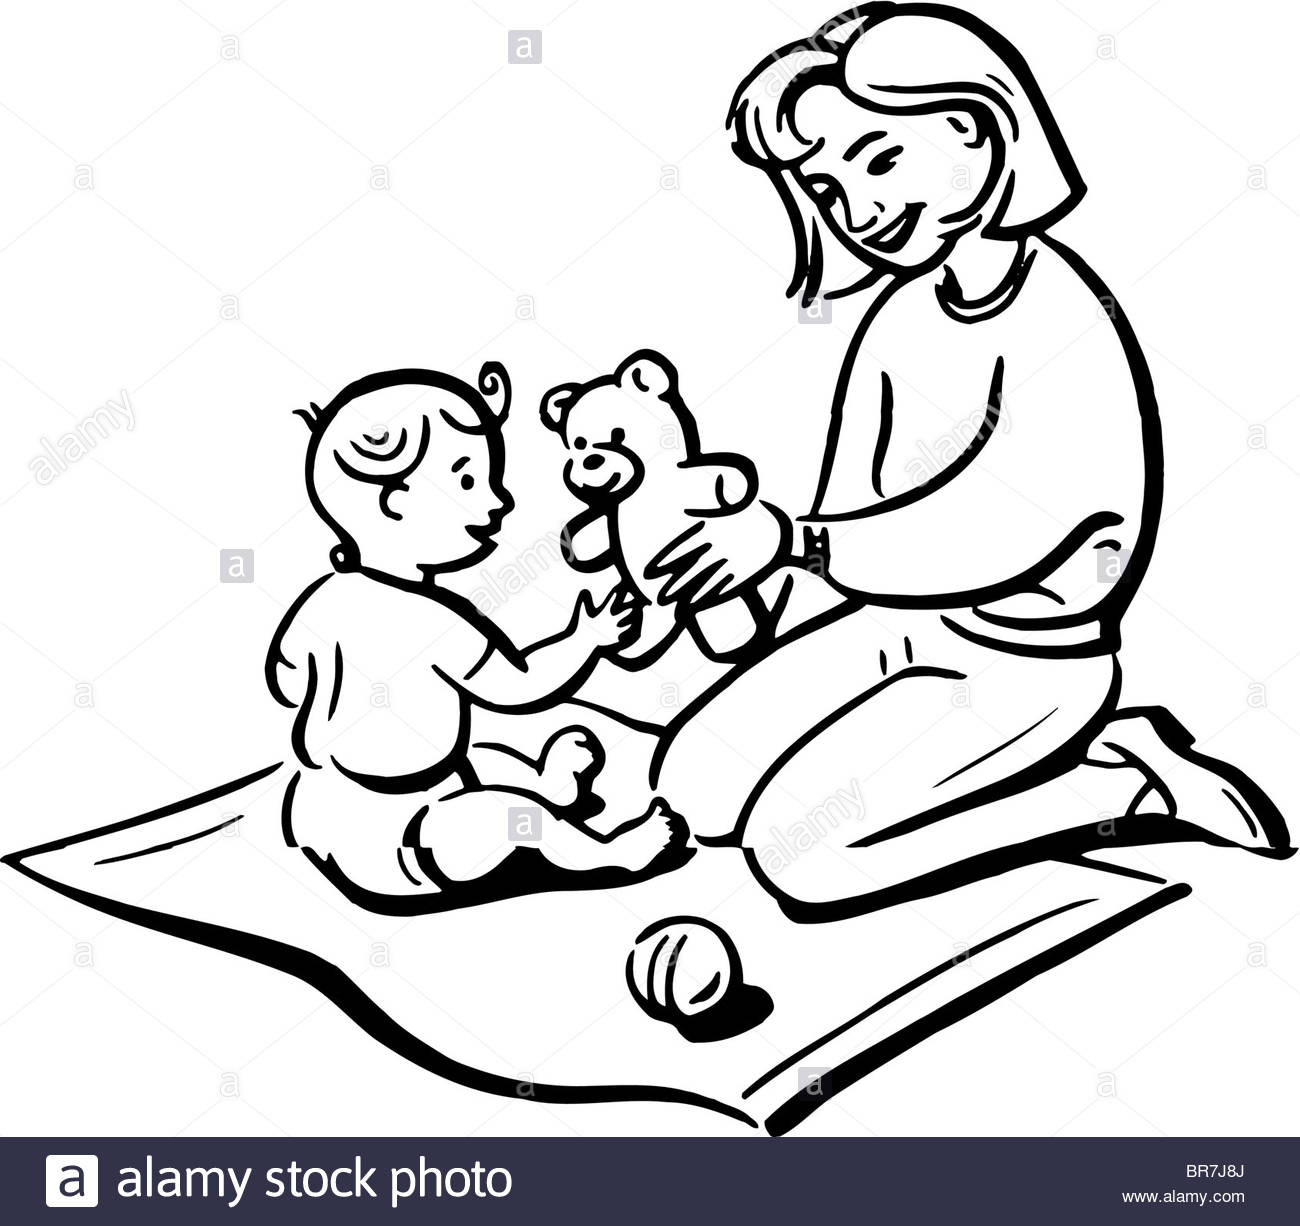 1300x1226 A Black And White Drawing Of A Mother Playing With Her Child Stock